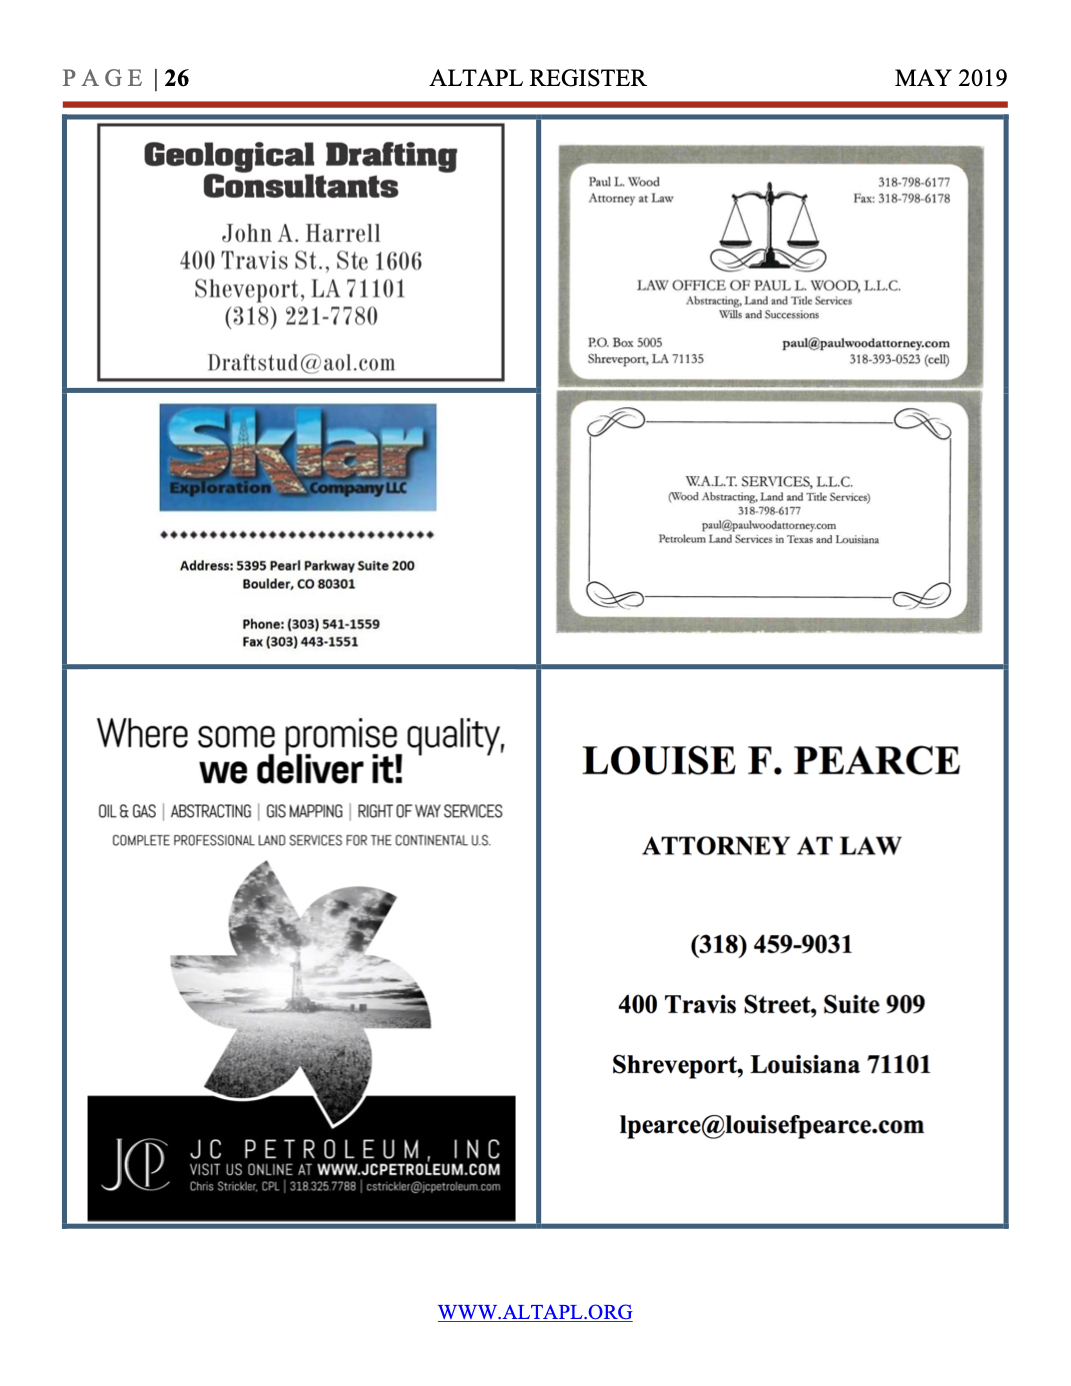 ALTAPL Register May 2019 Page 26.jpg